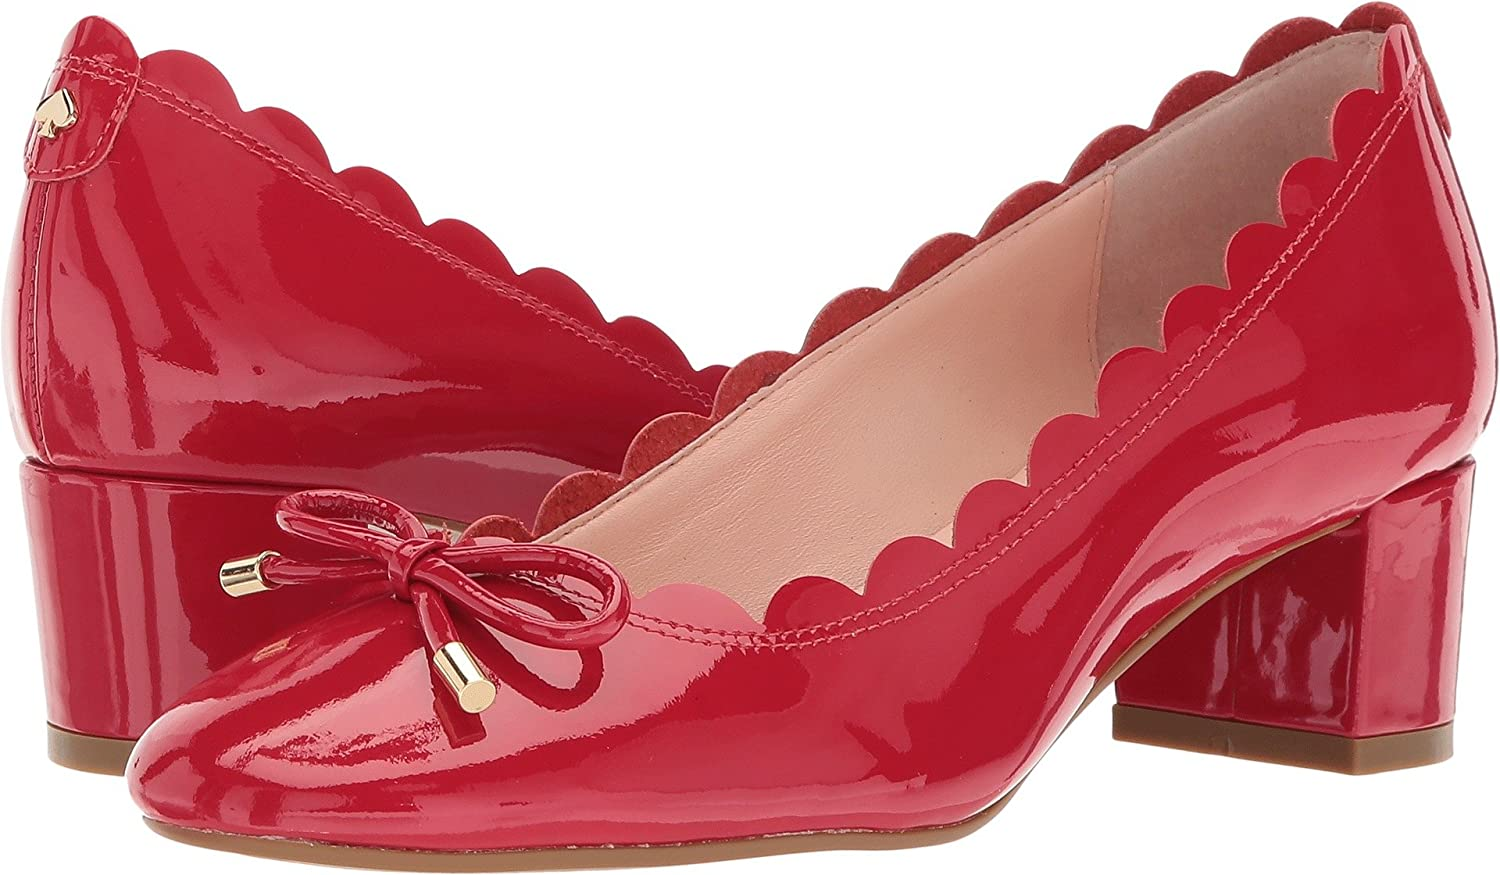 8334b4a828 Kate Spade New York Women's Yasmin Charm Red Patent 11 M US: Amazon.co.uk:  Shoes & Bags